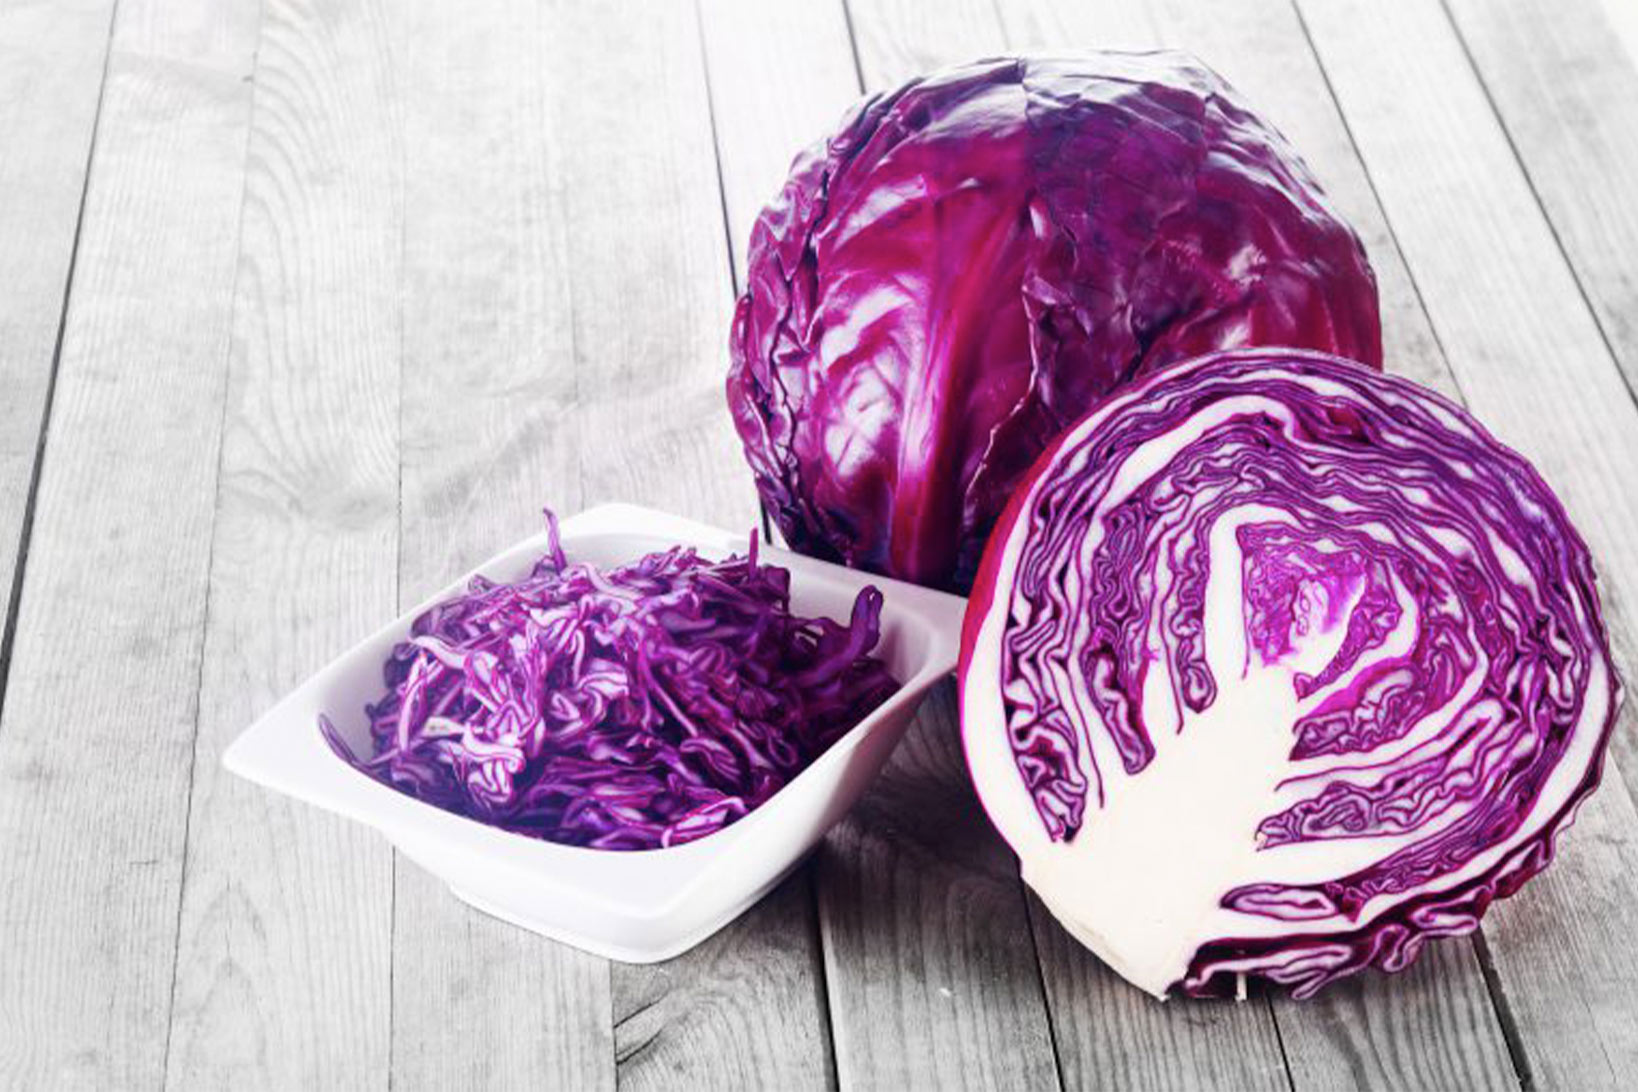 A cross section of a red cabbage leaning against another red cabbage, next to a small white bowl of shredded red cabbage, on wood.